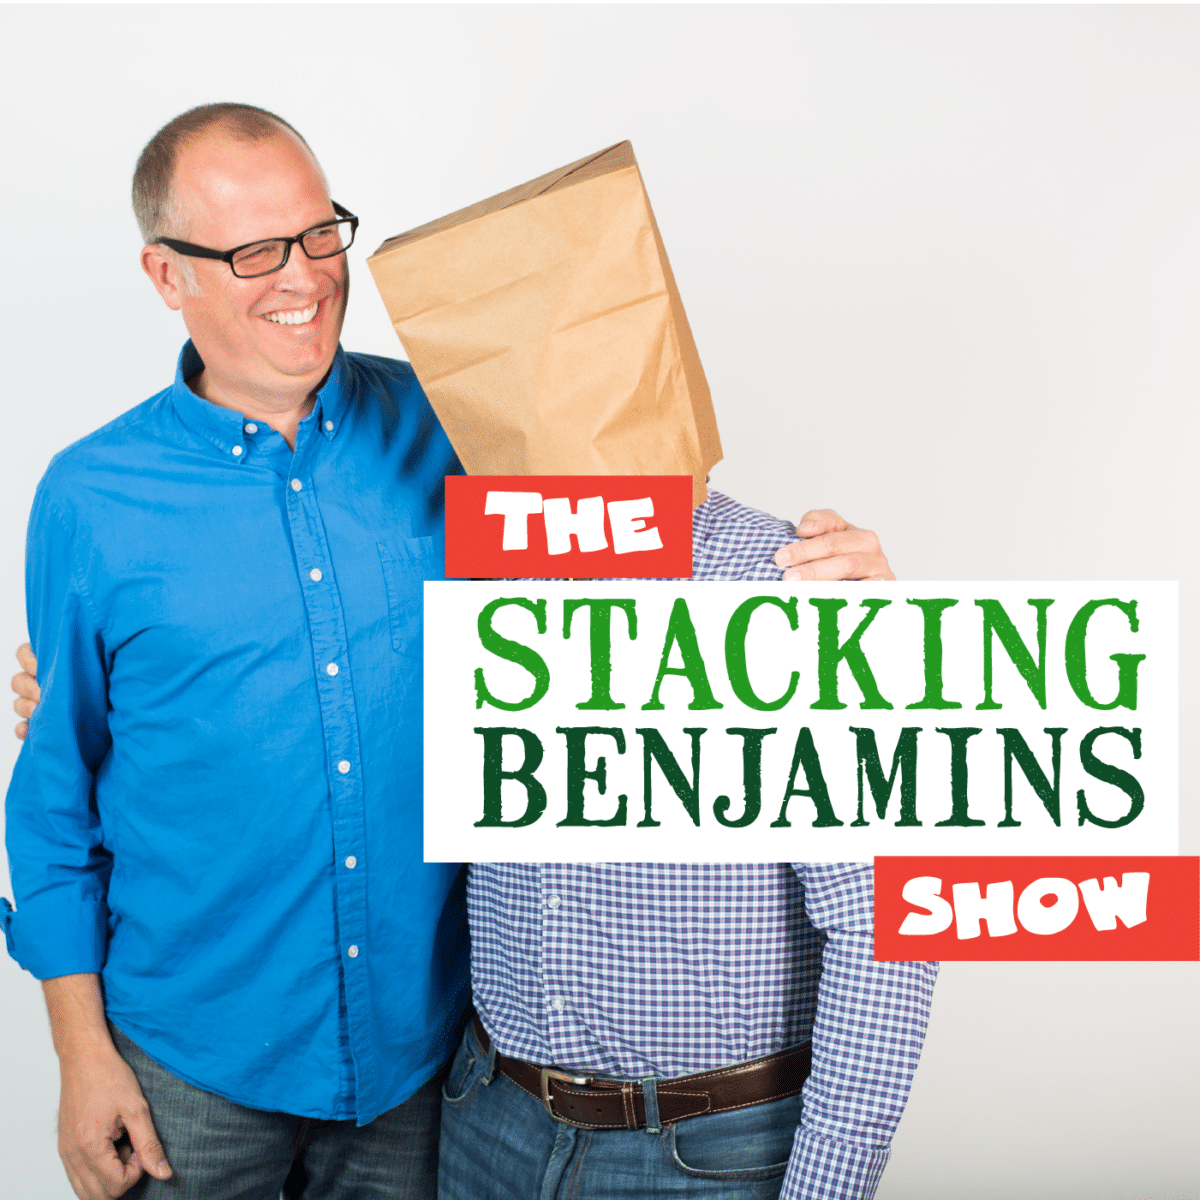 The Stacking Benjamins Show podcast logo